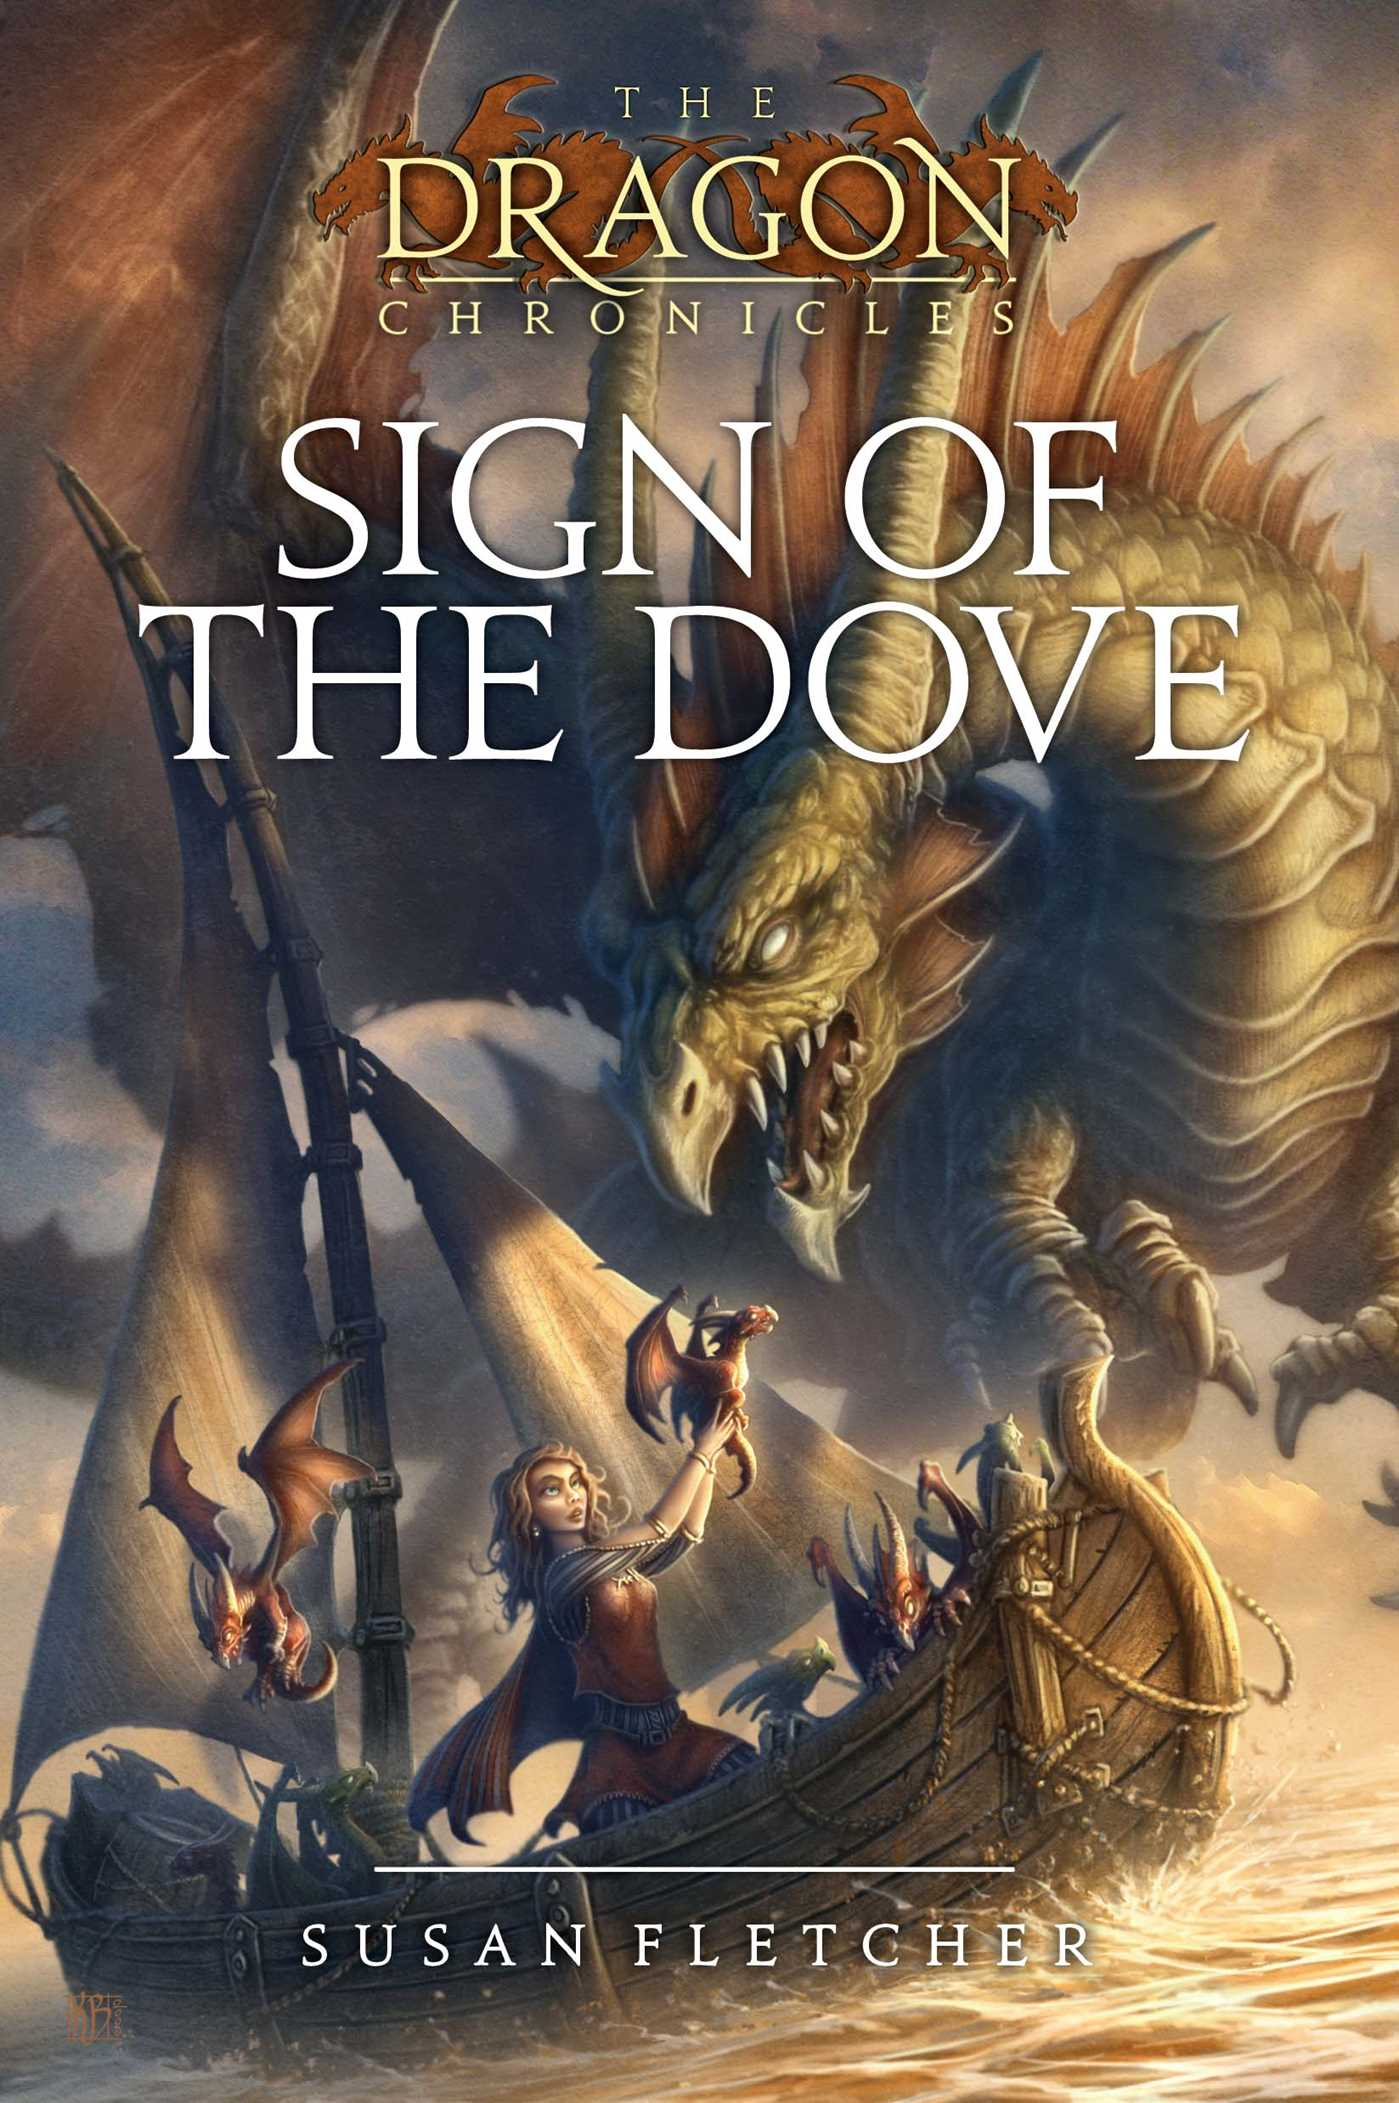 Sign-of-the-dove-9781416997146_hr